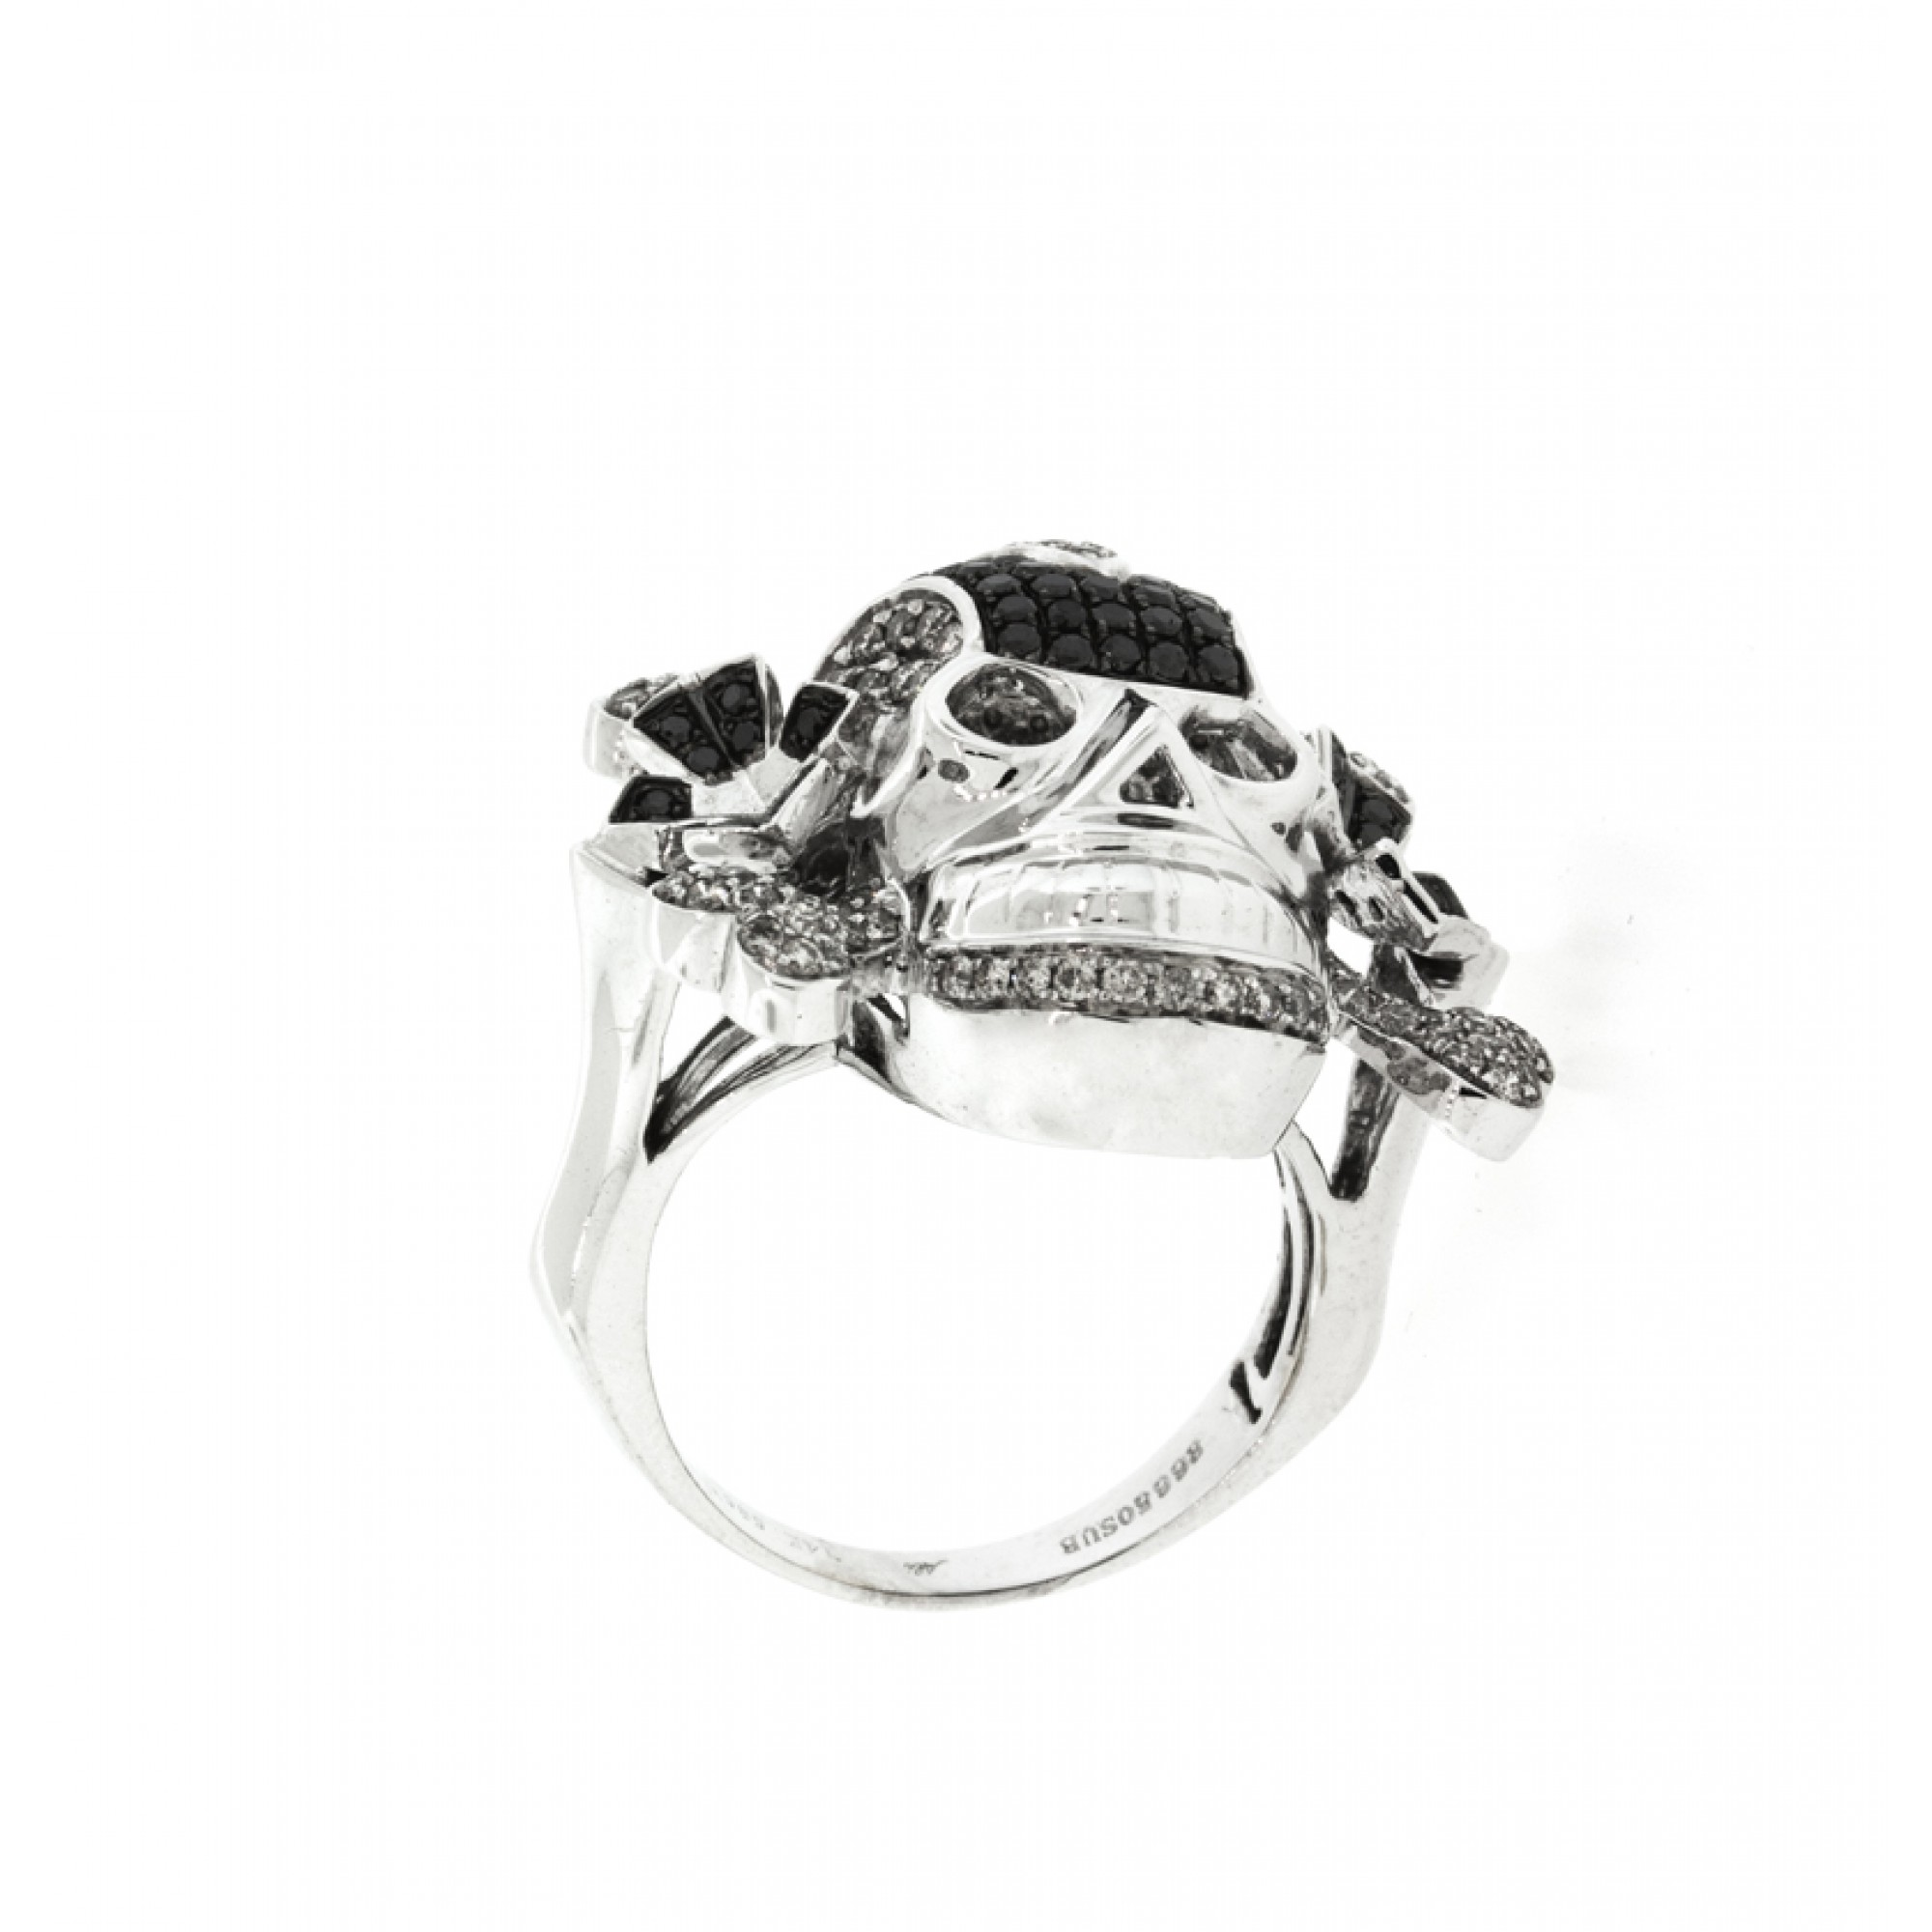 Men's Black and White Diamonds Skull Ring,Cheap Diamond